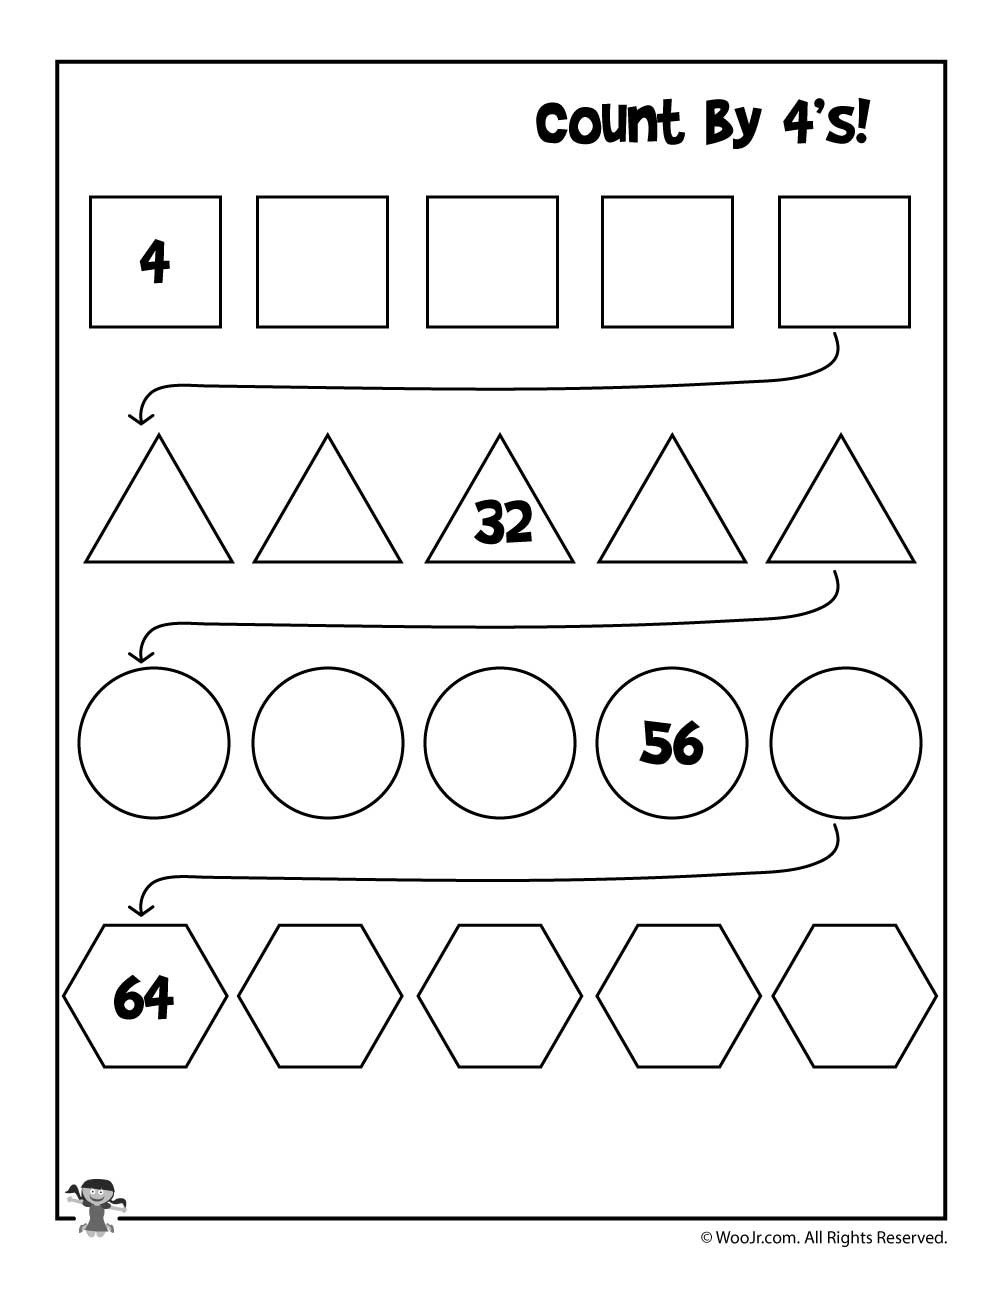 skip counting worksheets 4s